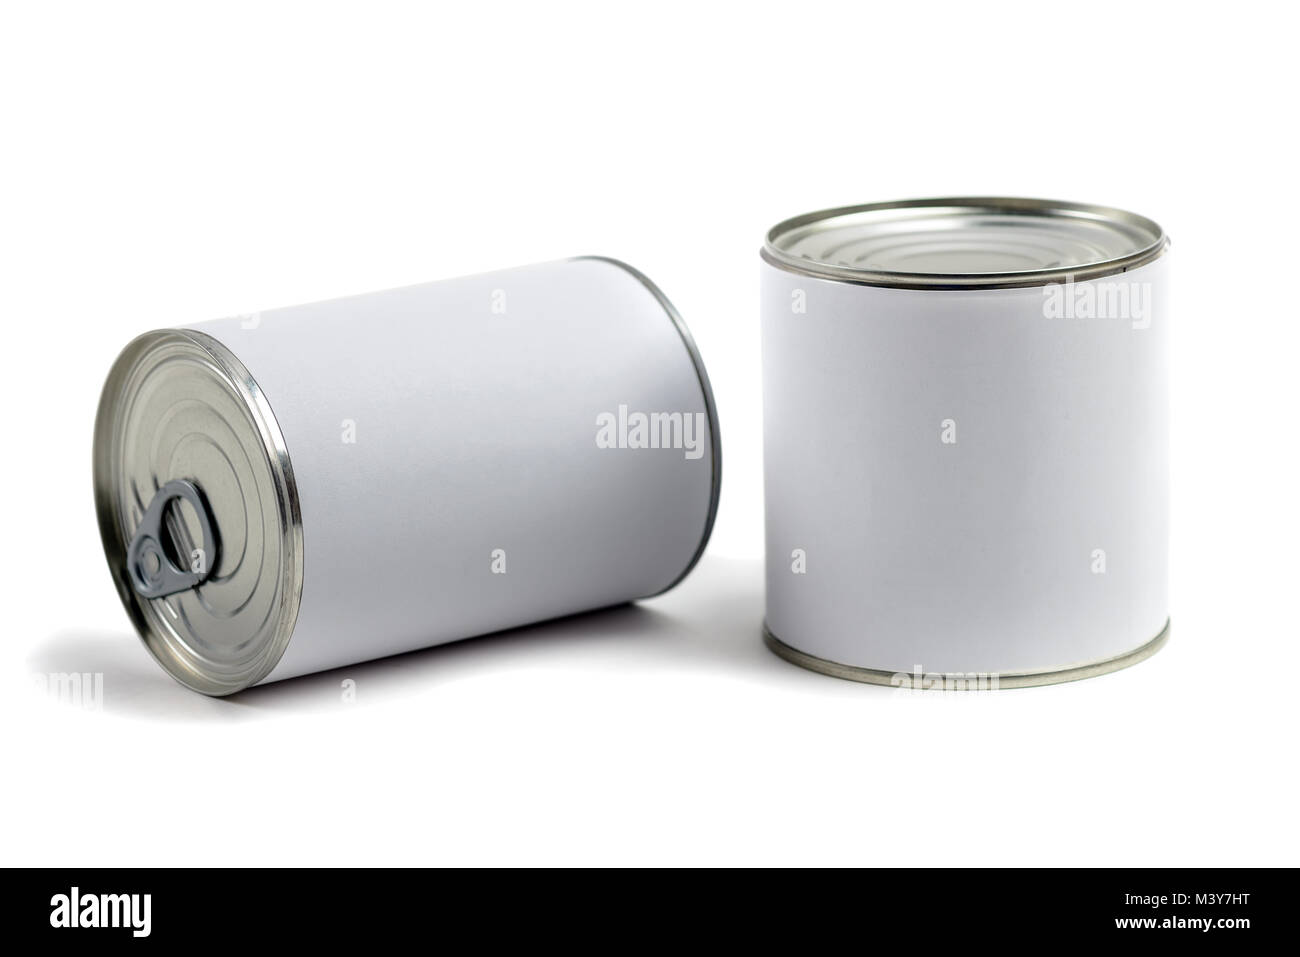 food tin cans on white background - Stock Image